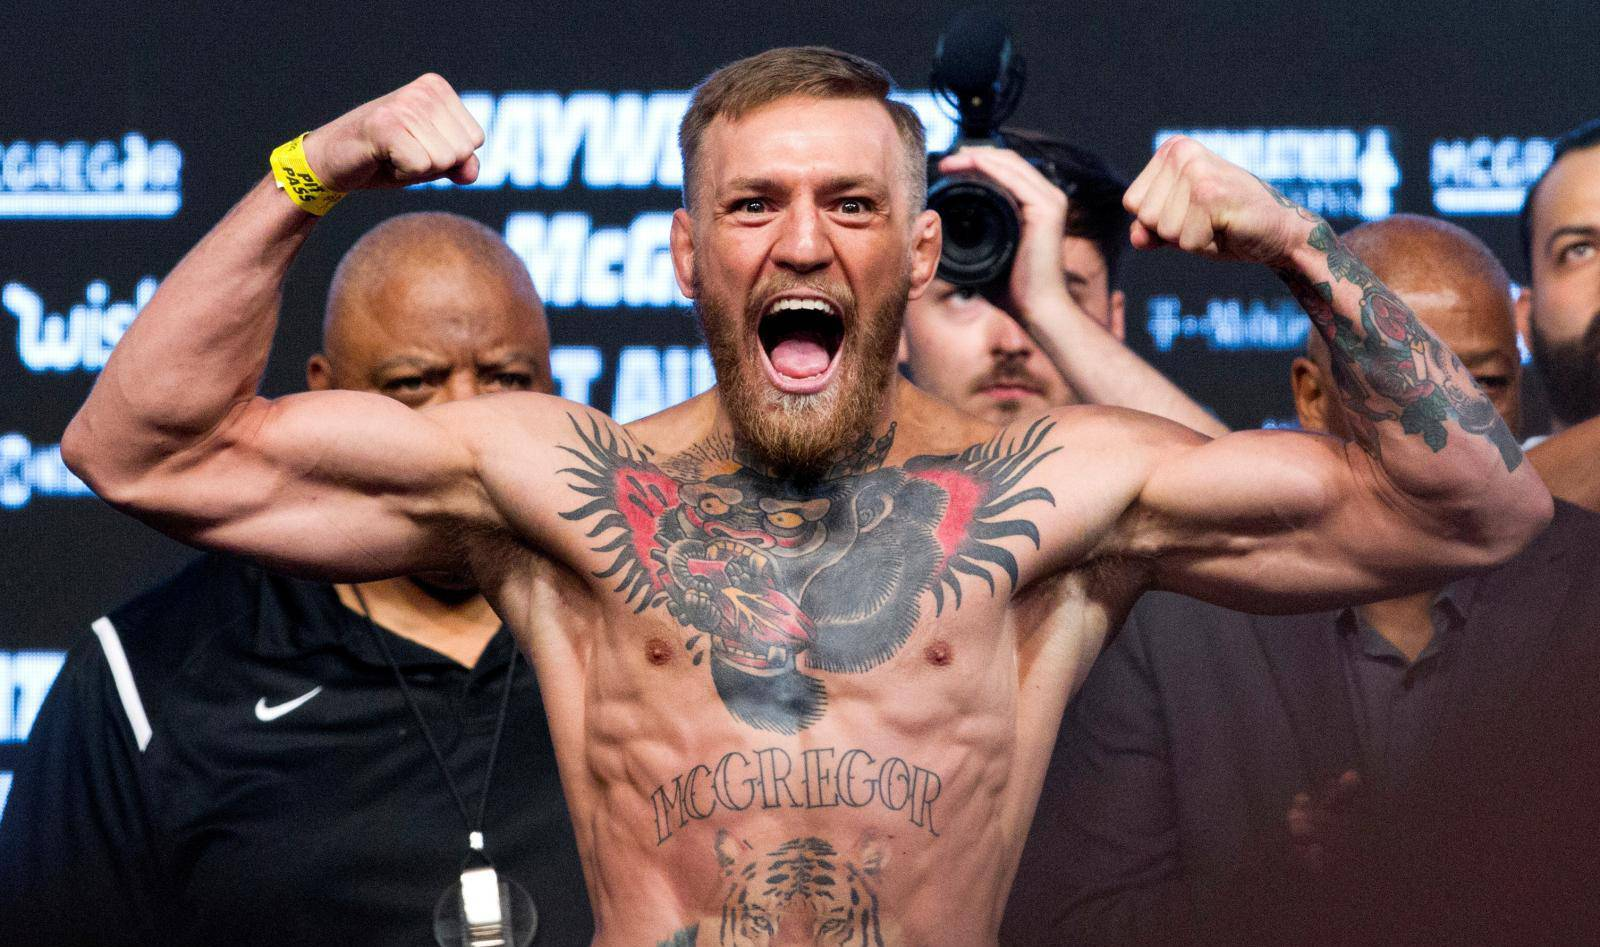 FILE PHOTO: UFC lightweight champion Conor McGregor of Ireland poses on the scale during his official weigh-in at T-Mobile Arena in Las Vegas